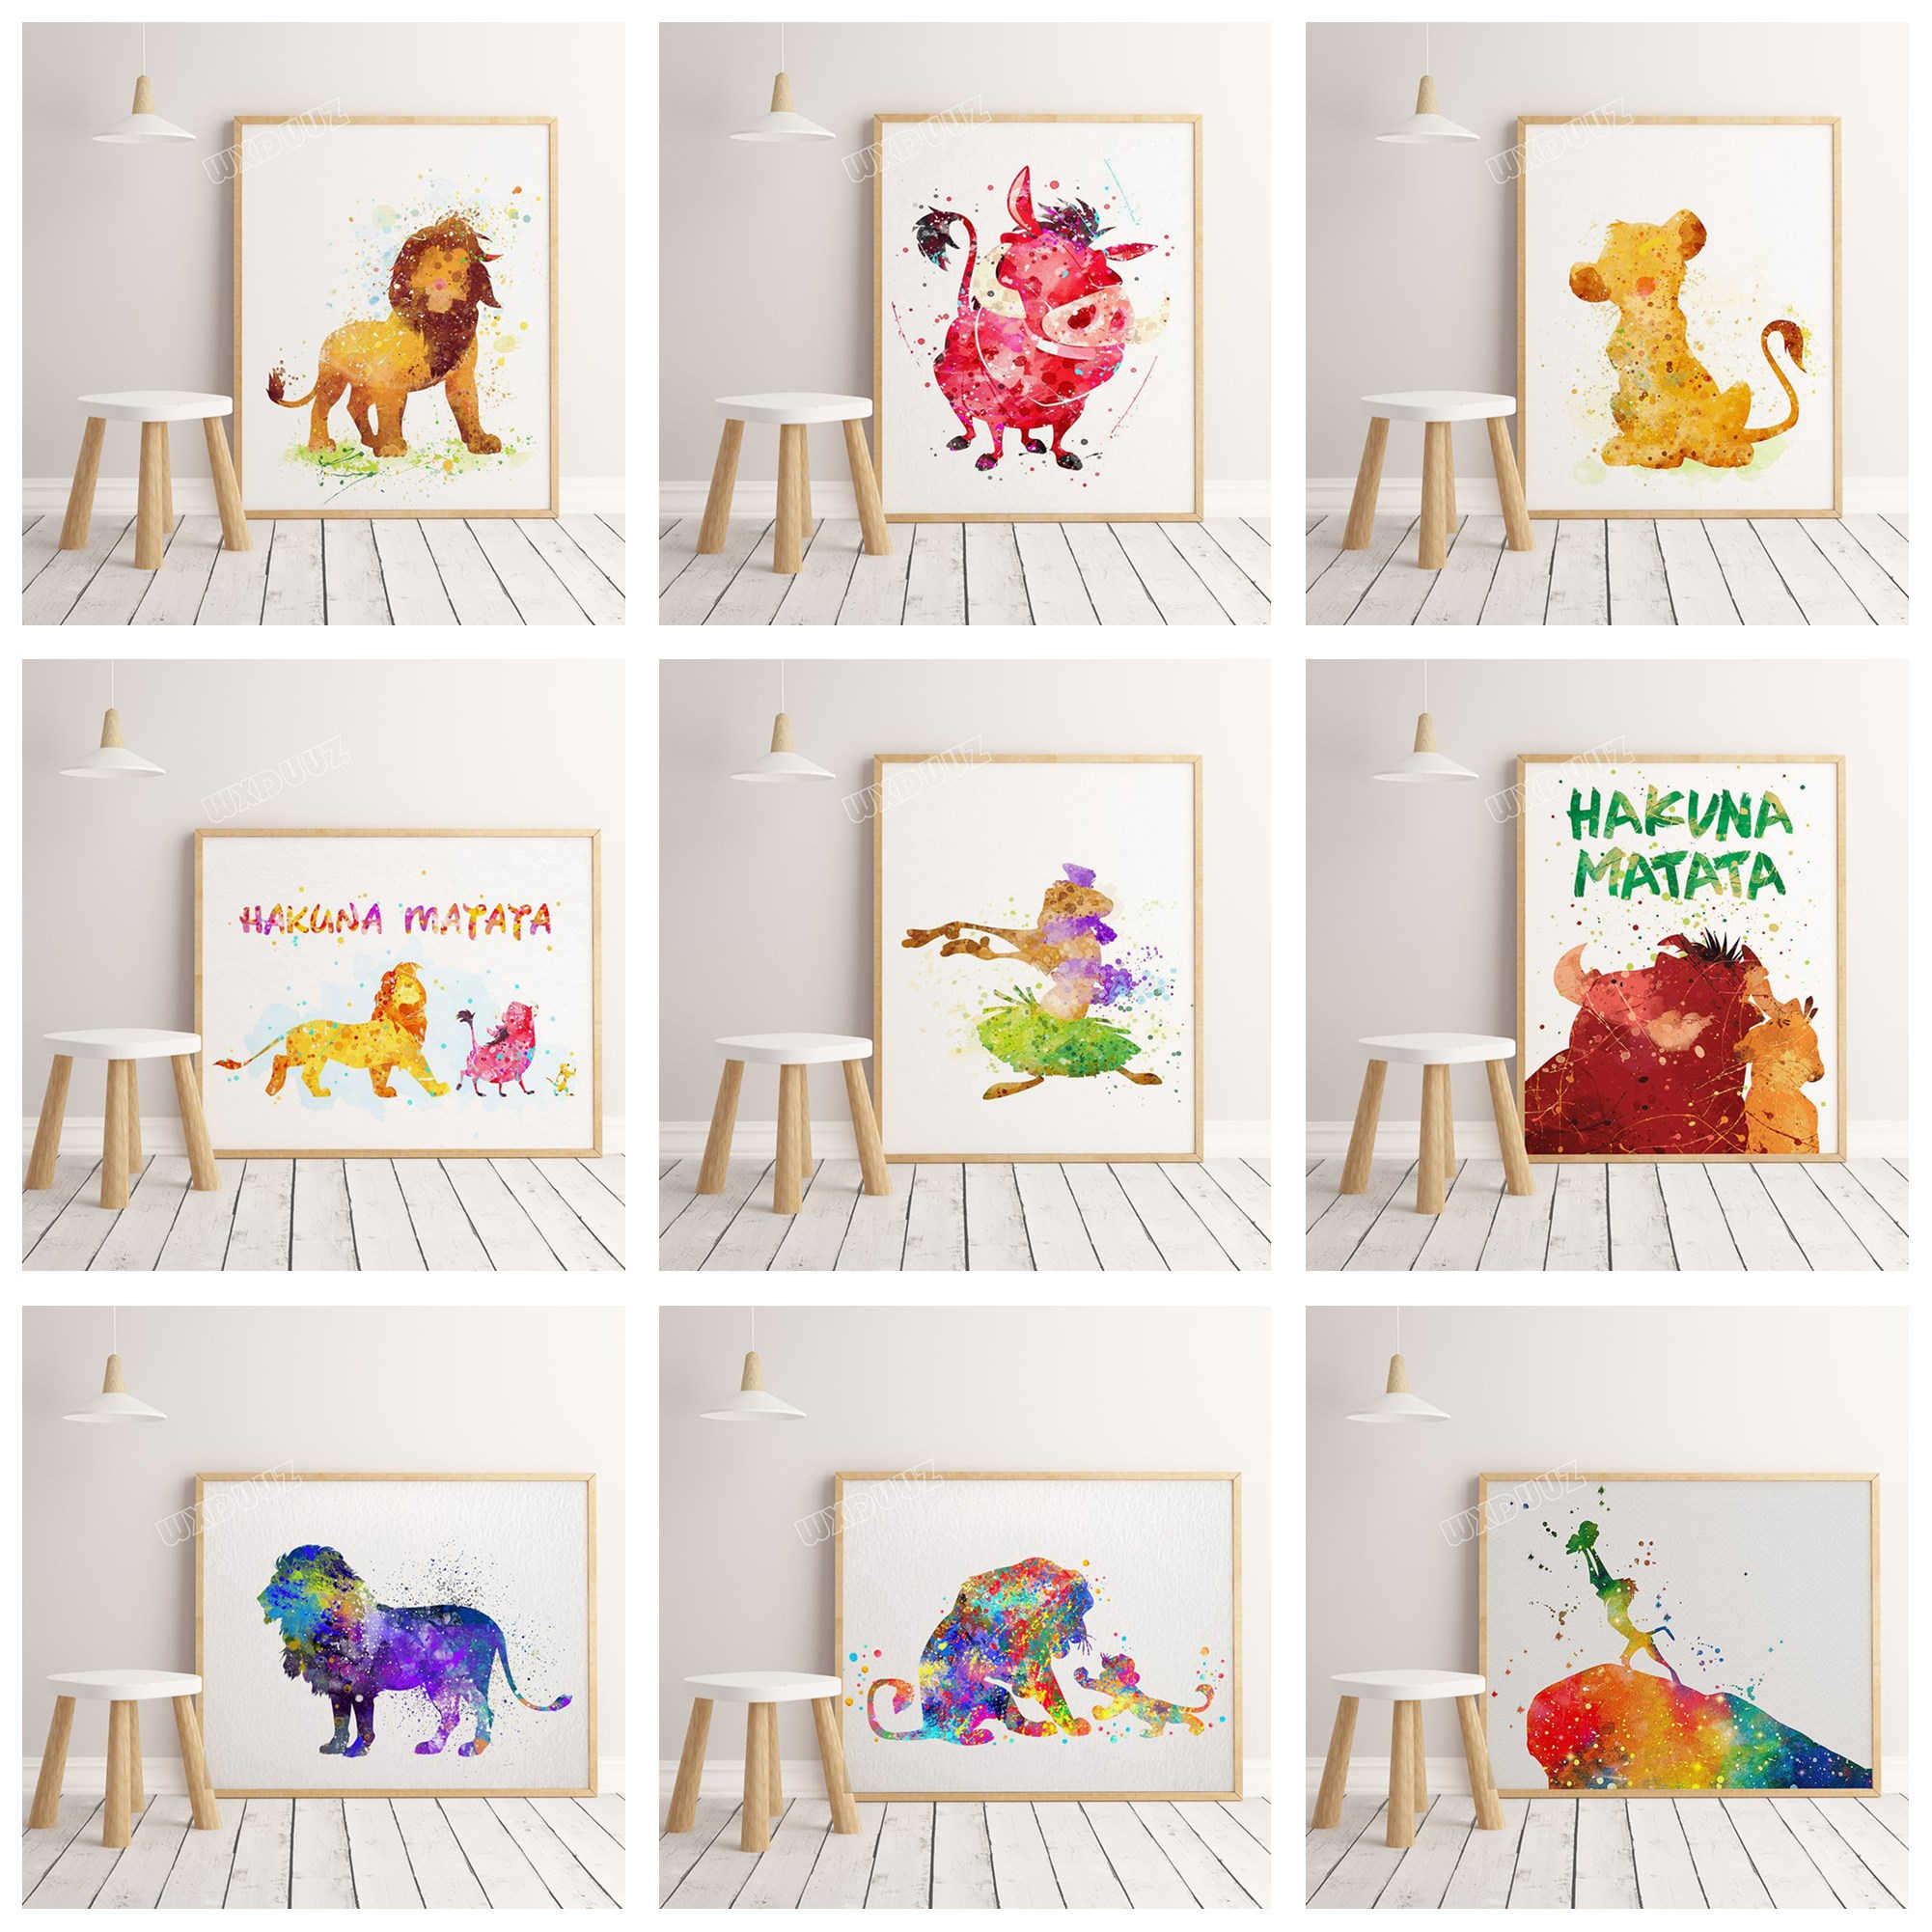 2019 watercolor movie The Lion King poster cartoon children room decoration Art Decor Home Decor Painting canvas painting #K293